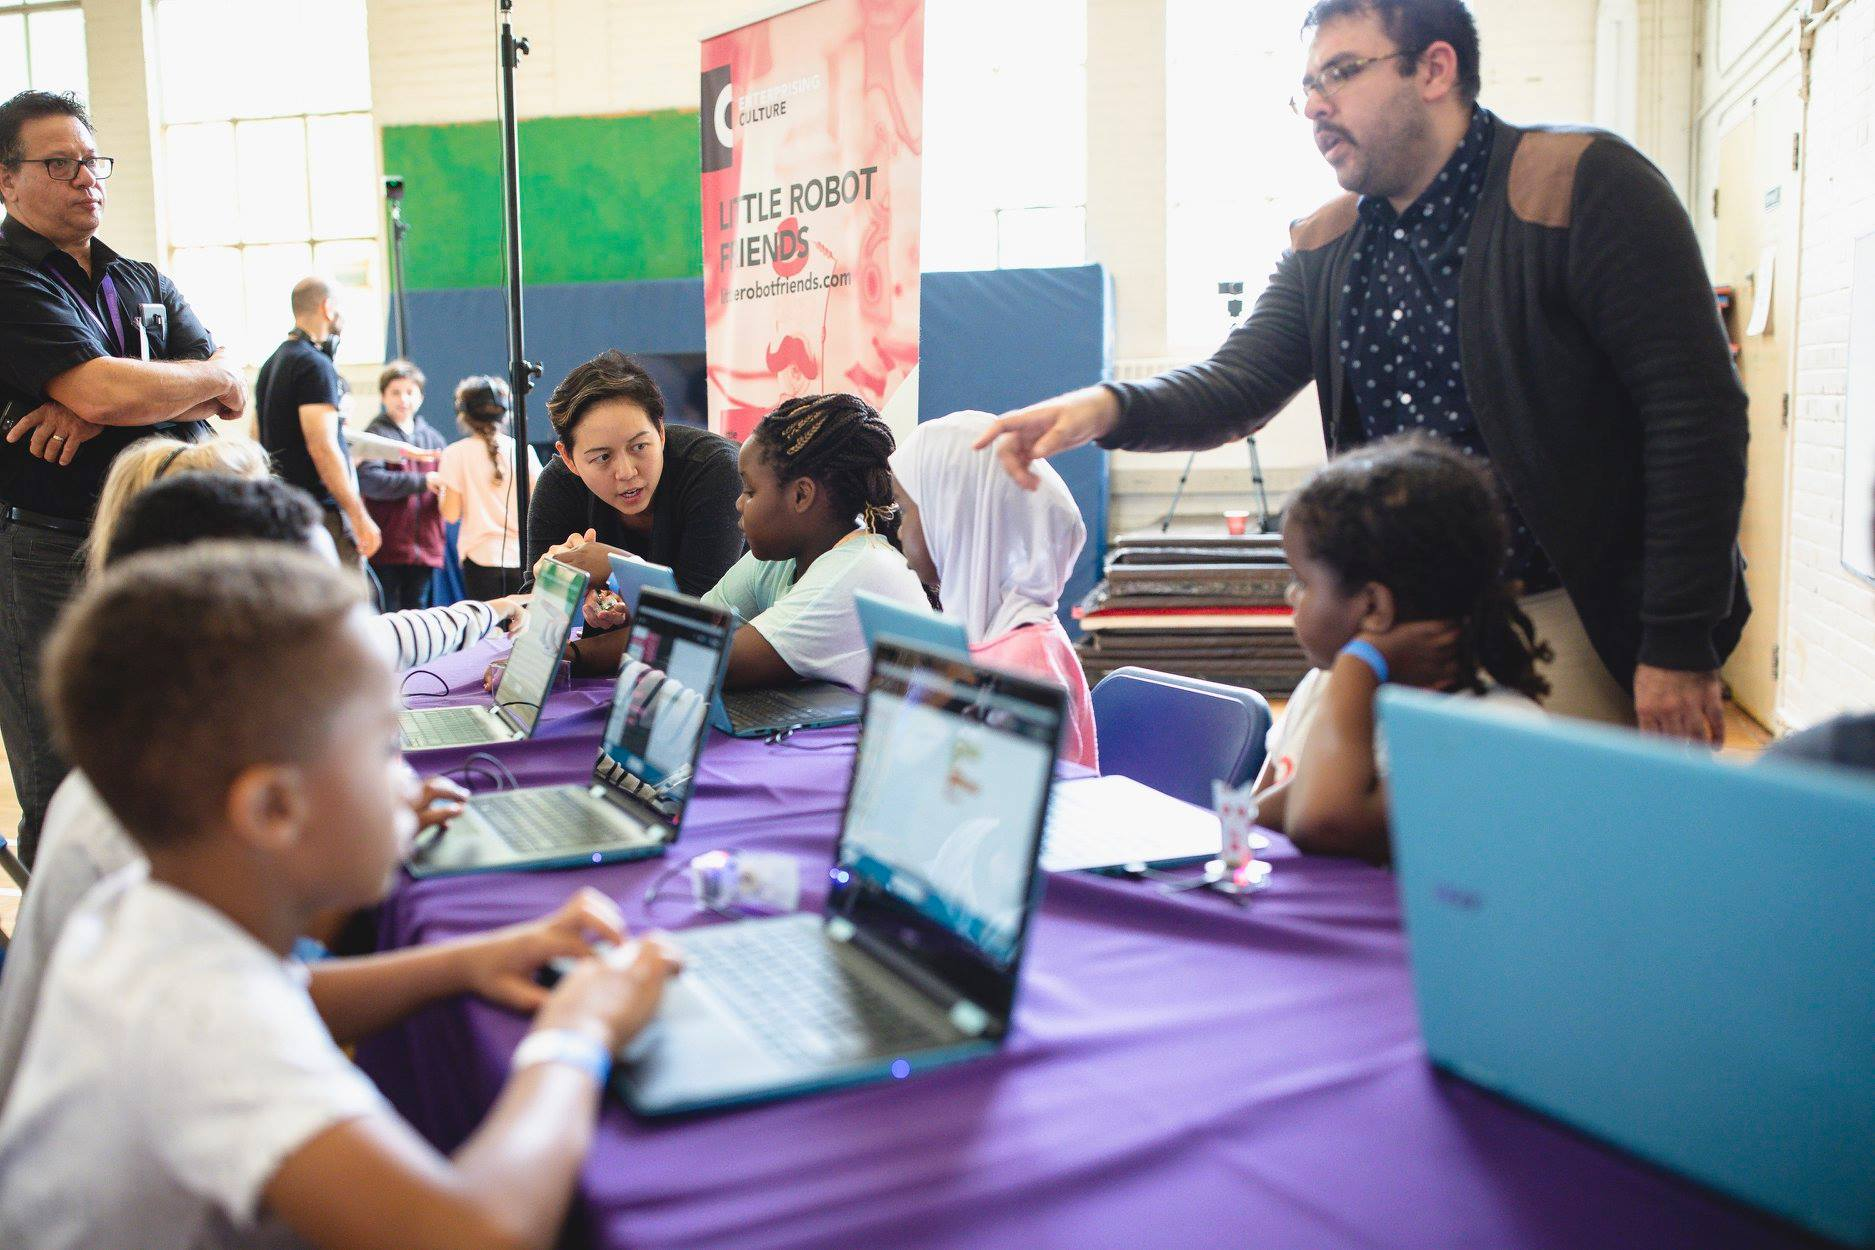 A group of kids sit along a purple table and in front of each of them is a laptop. One man stands behind of the table while a woman is at the end of the table talking to a girl.